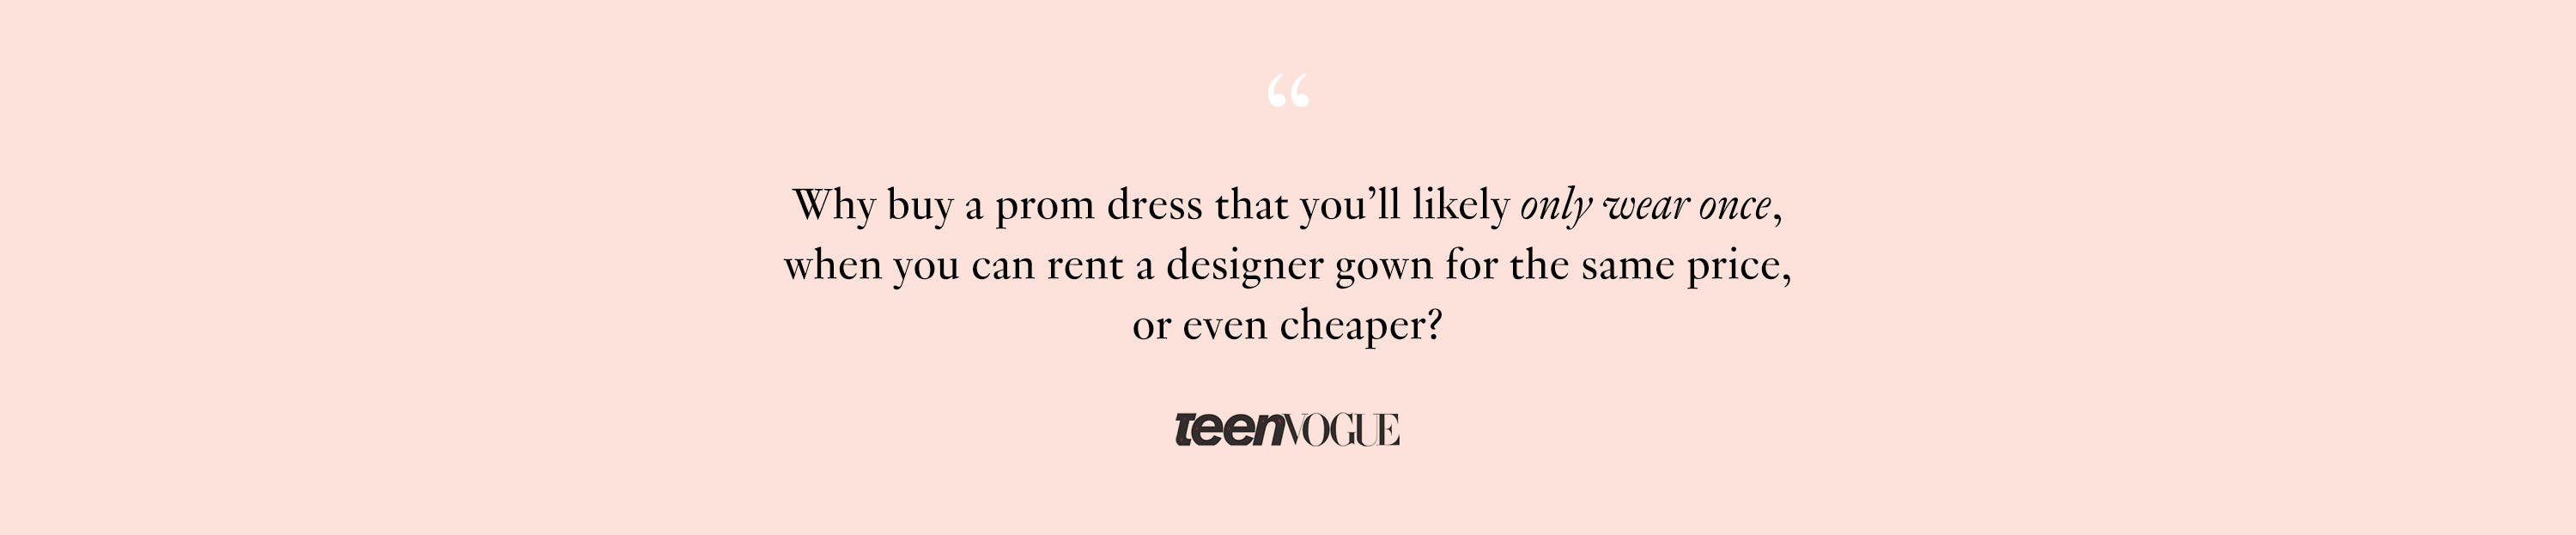 TeenVogue Article Quote: Why buy a prom dress that you'll likely only wear once, when you can rent a designer gown for the same price, or even cheaper?